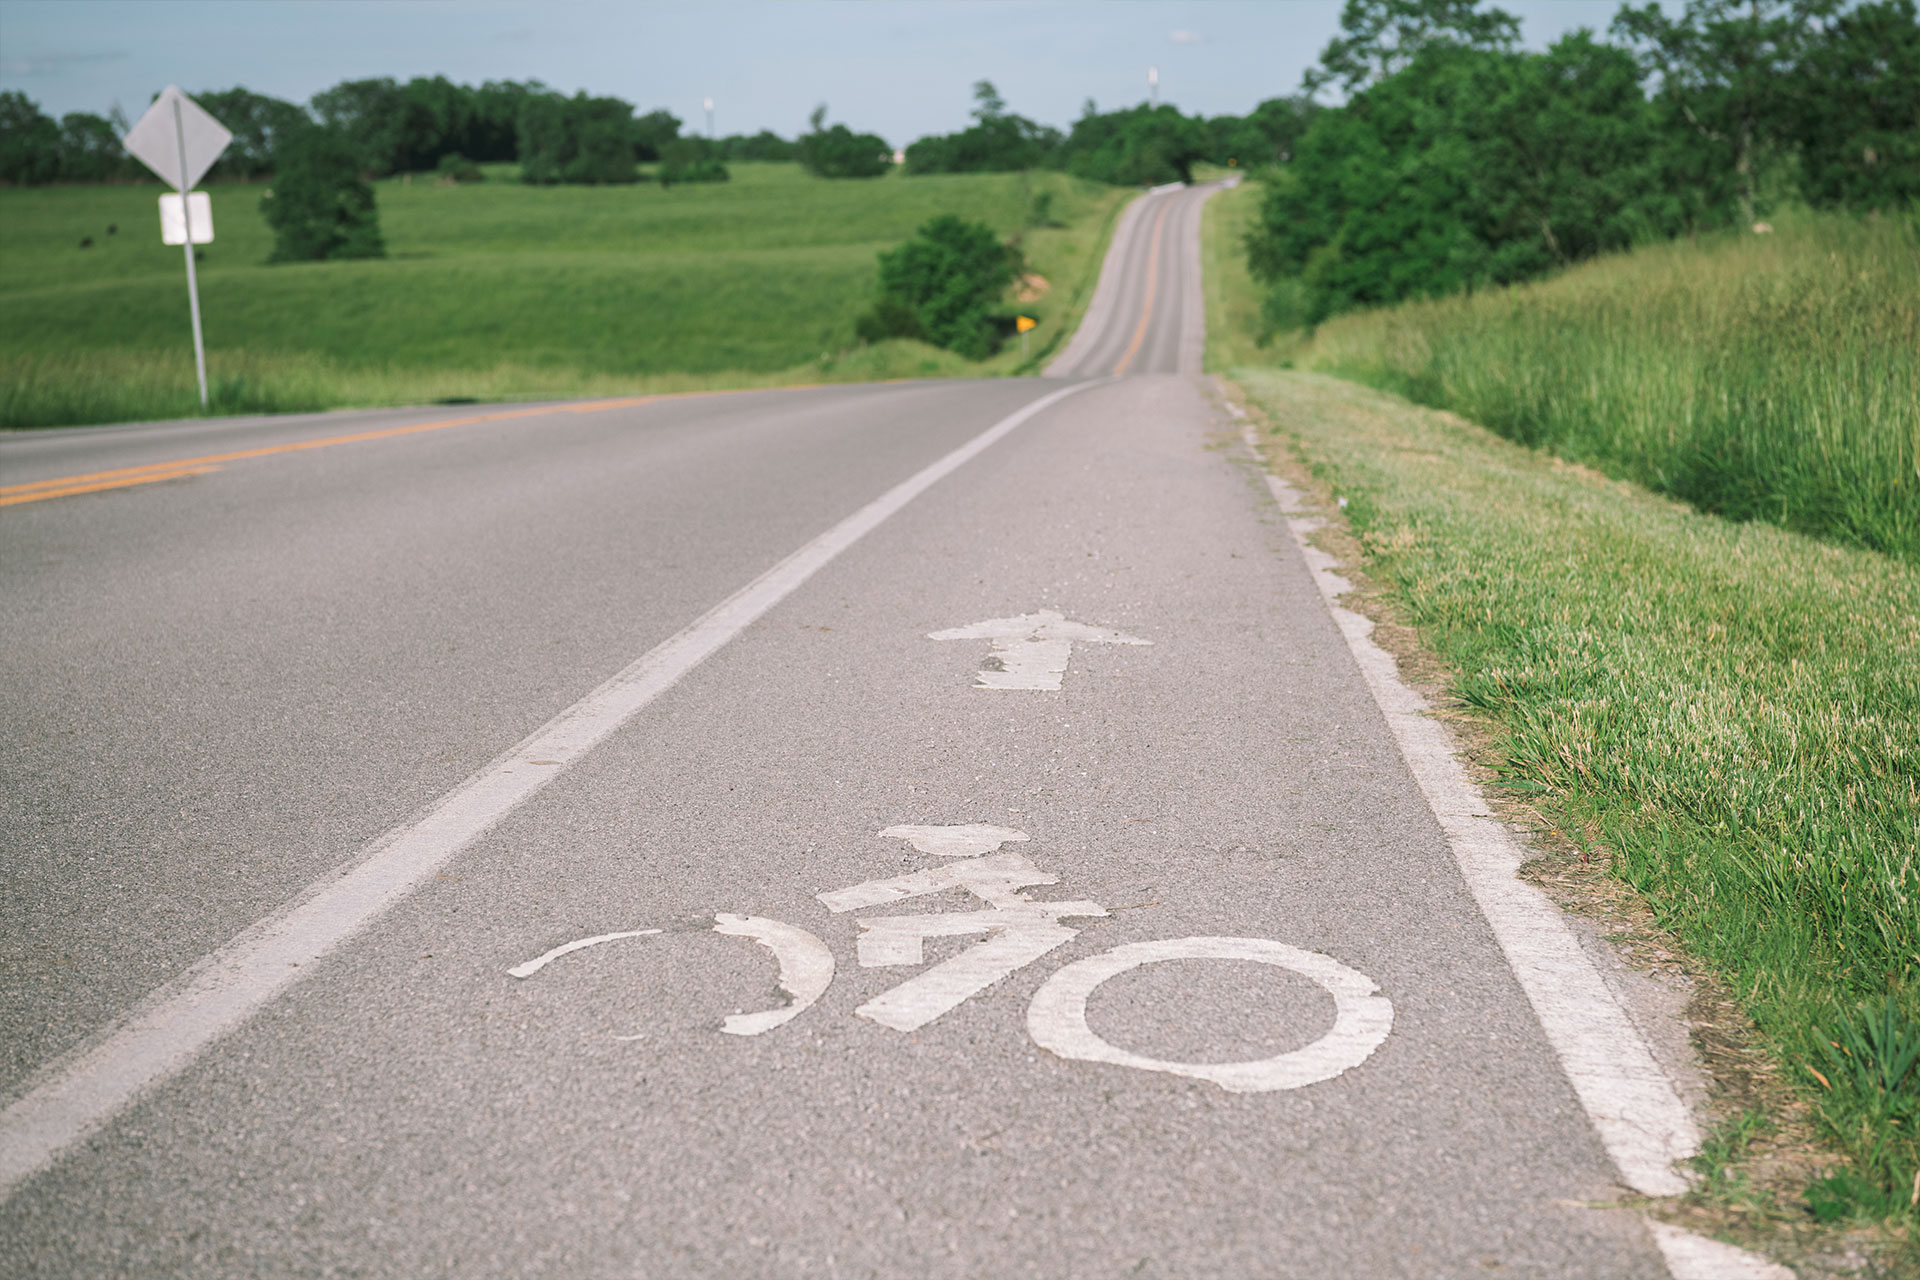 Close up of the biking lane symbol painted on the road Patty likes to bike on. The road is surrounded by beautiful, grassy rolling hills.